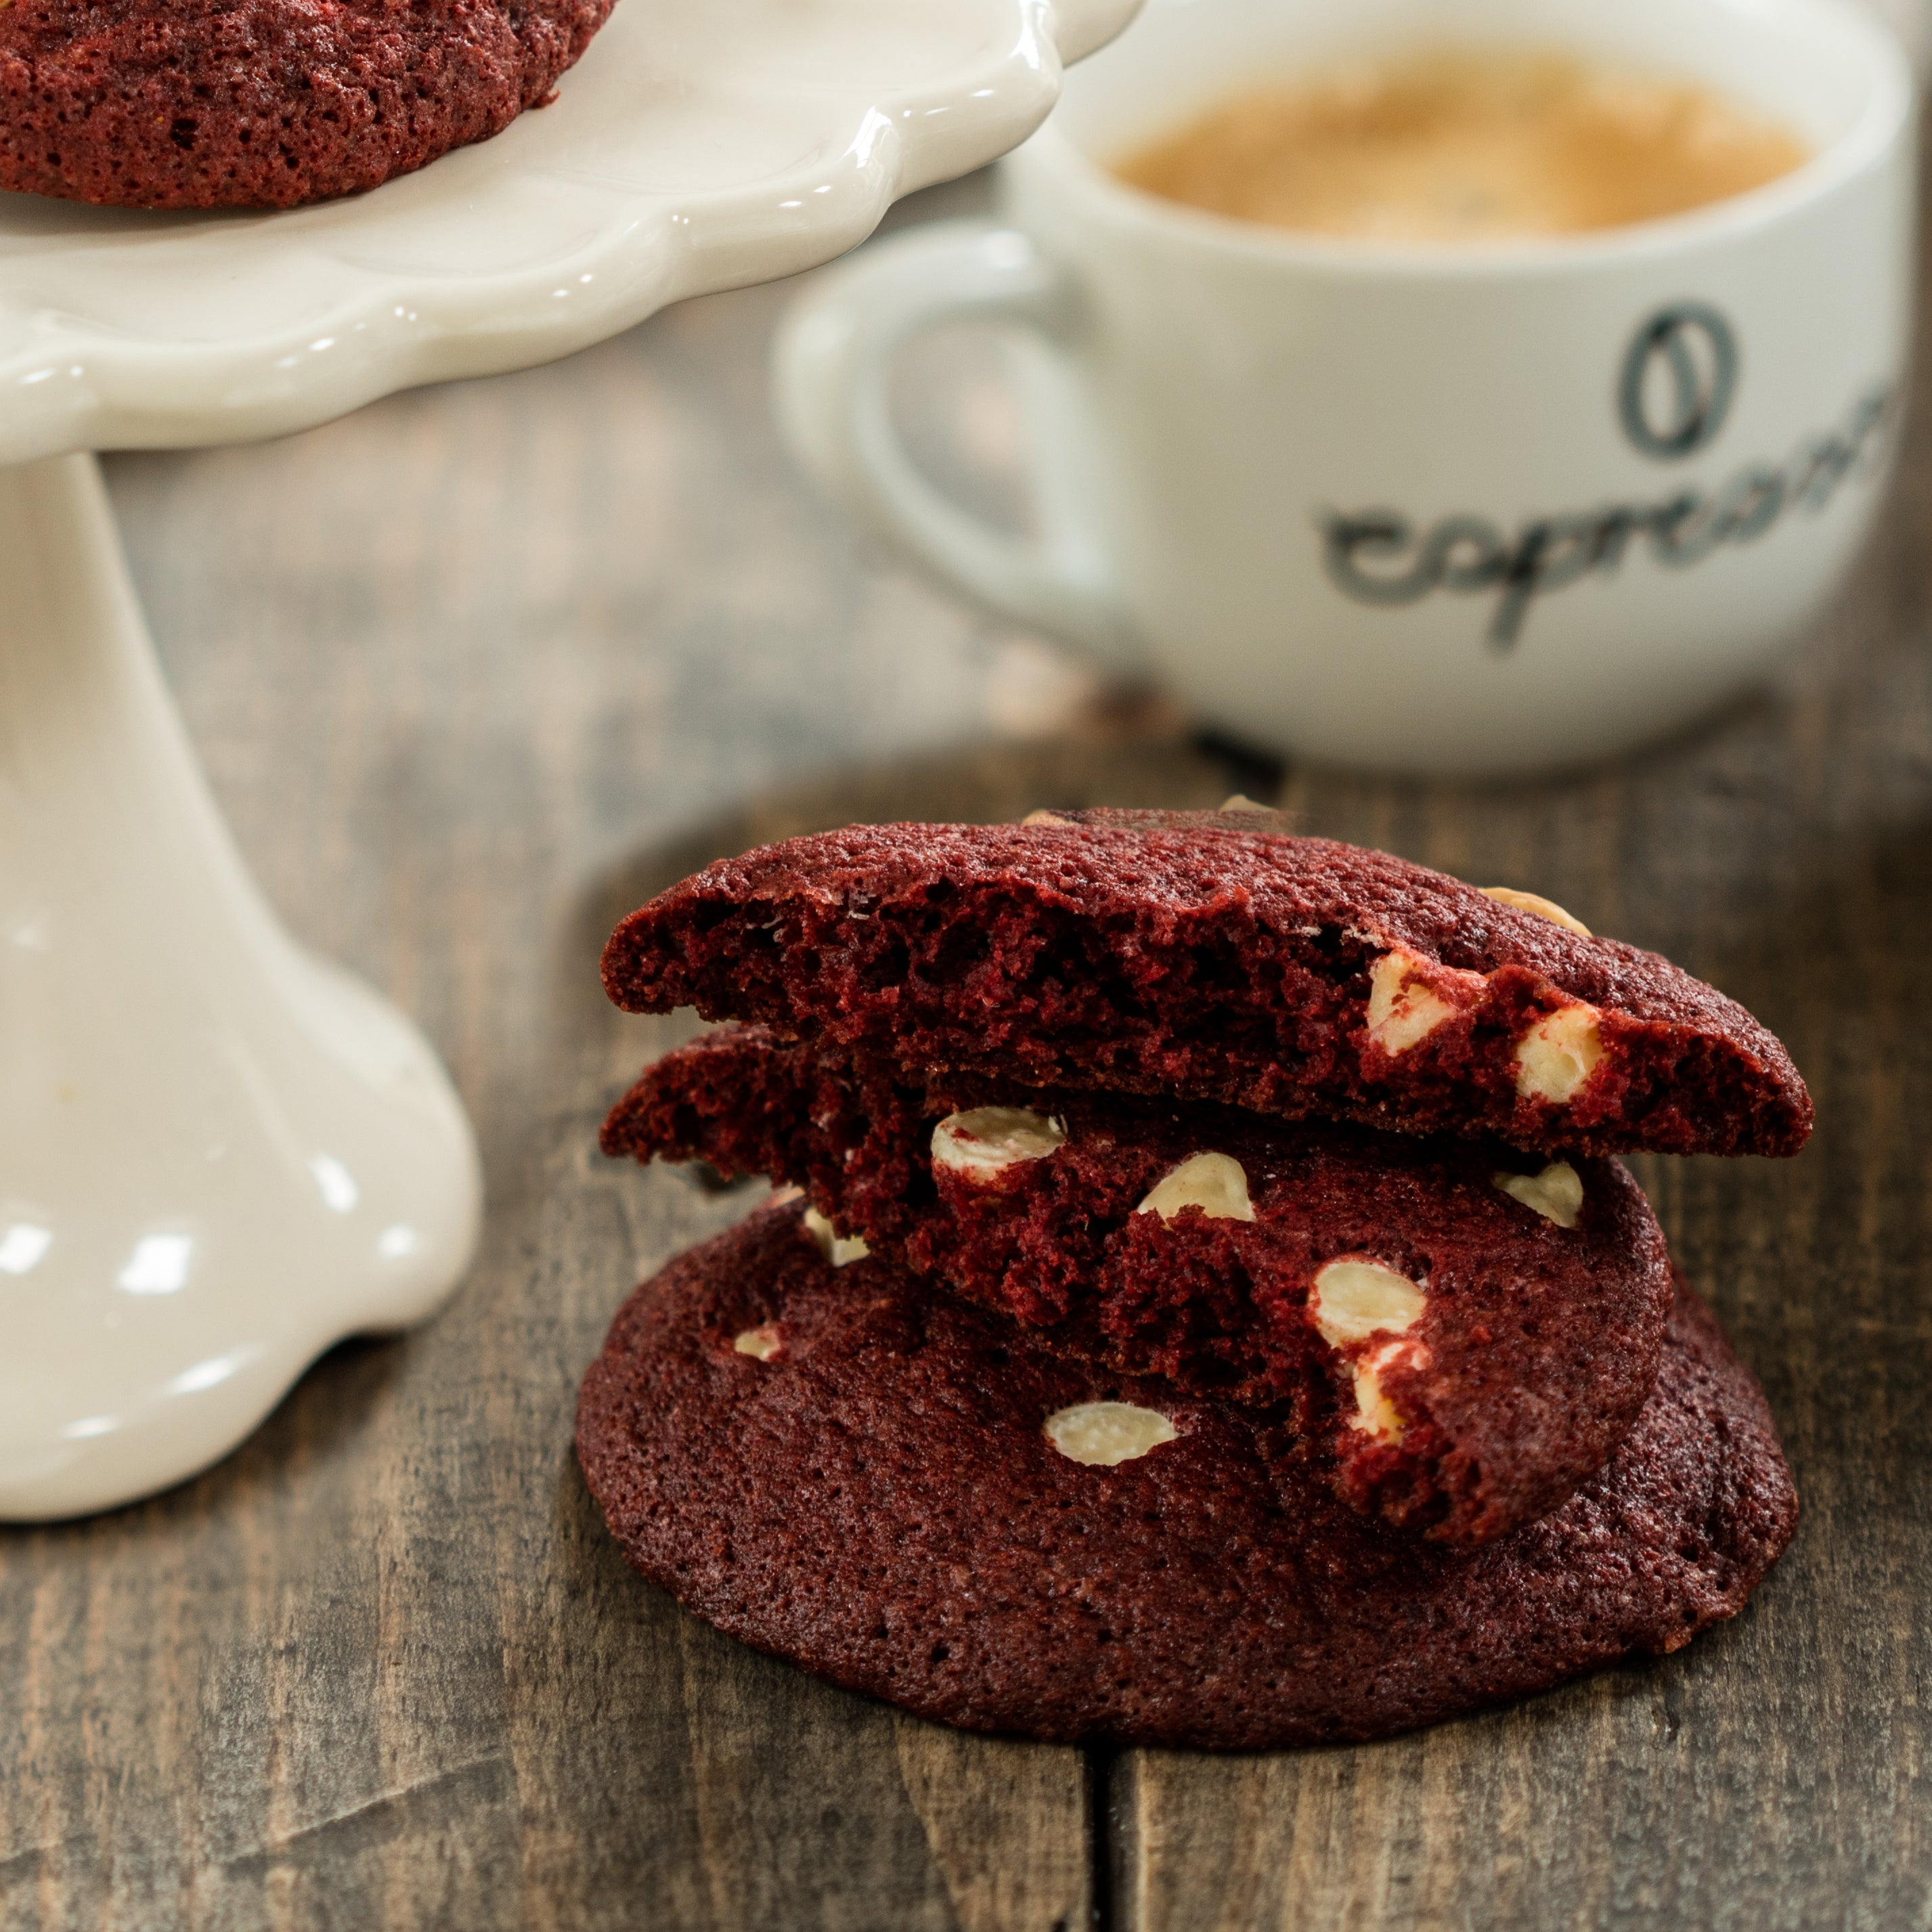 Red velvet cookie close up with cup of coffee